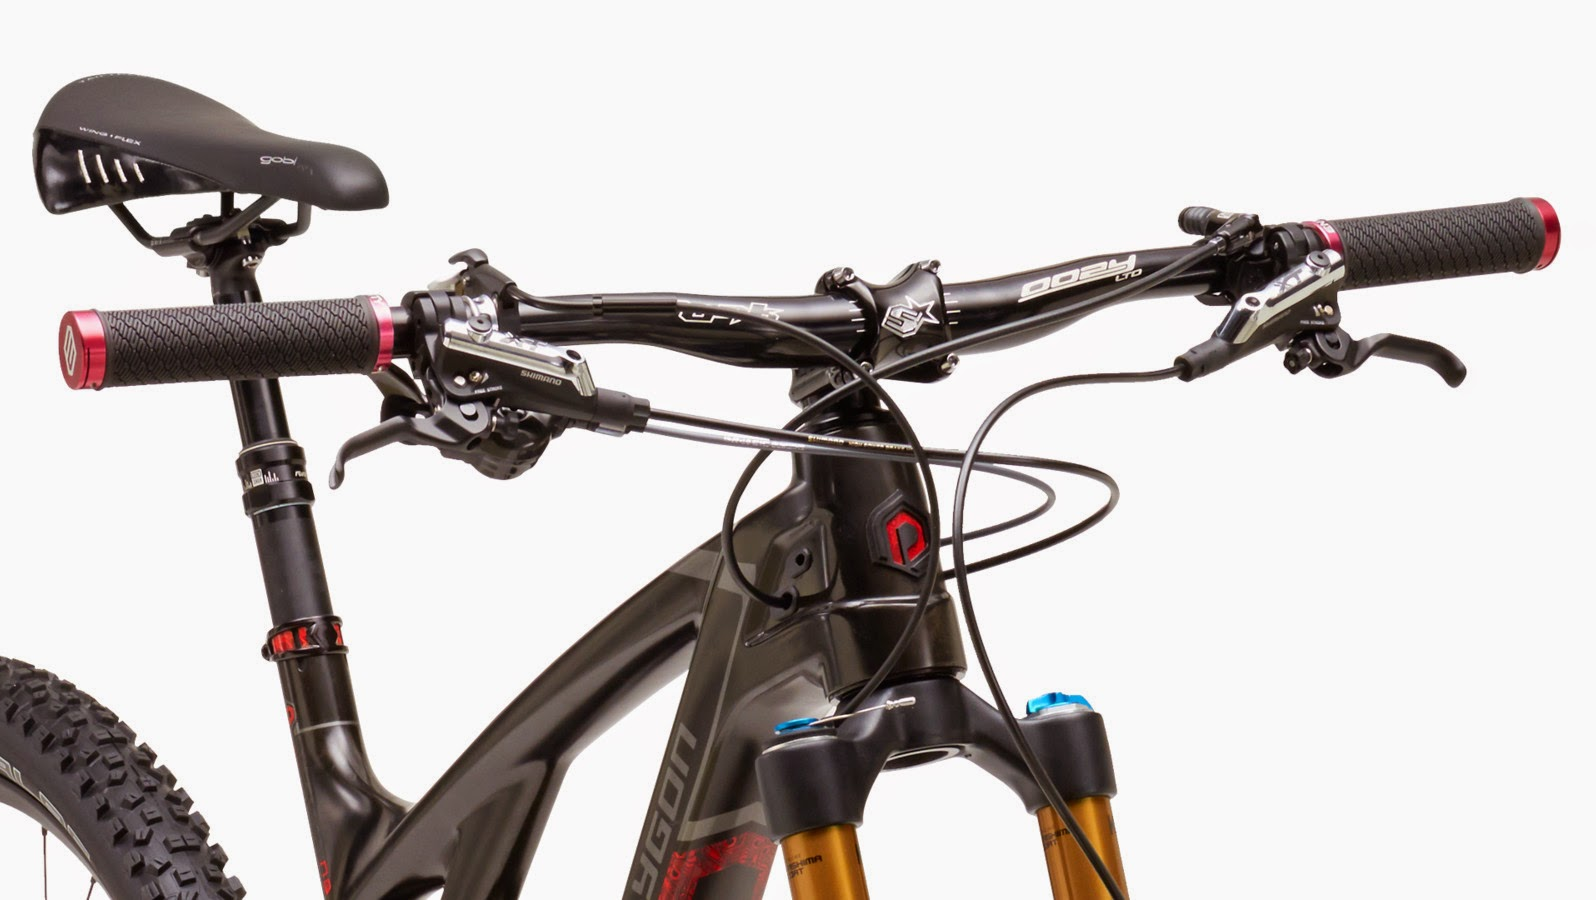 Bike News, Event, New Bike, New Product, Polygon N9 2014, Polygon N9, Eurobike 2014